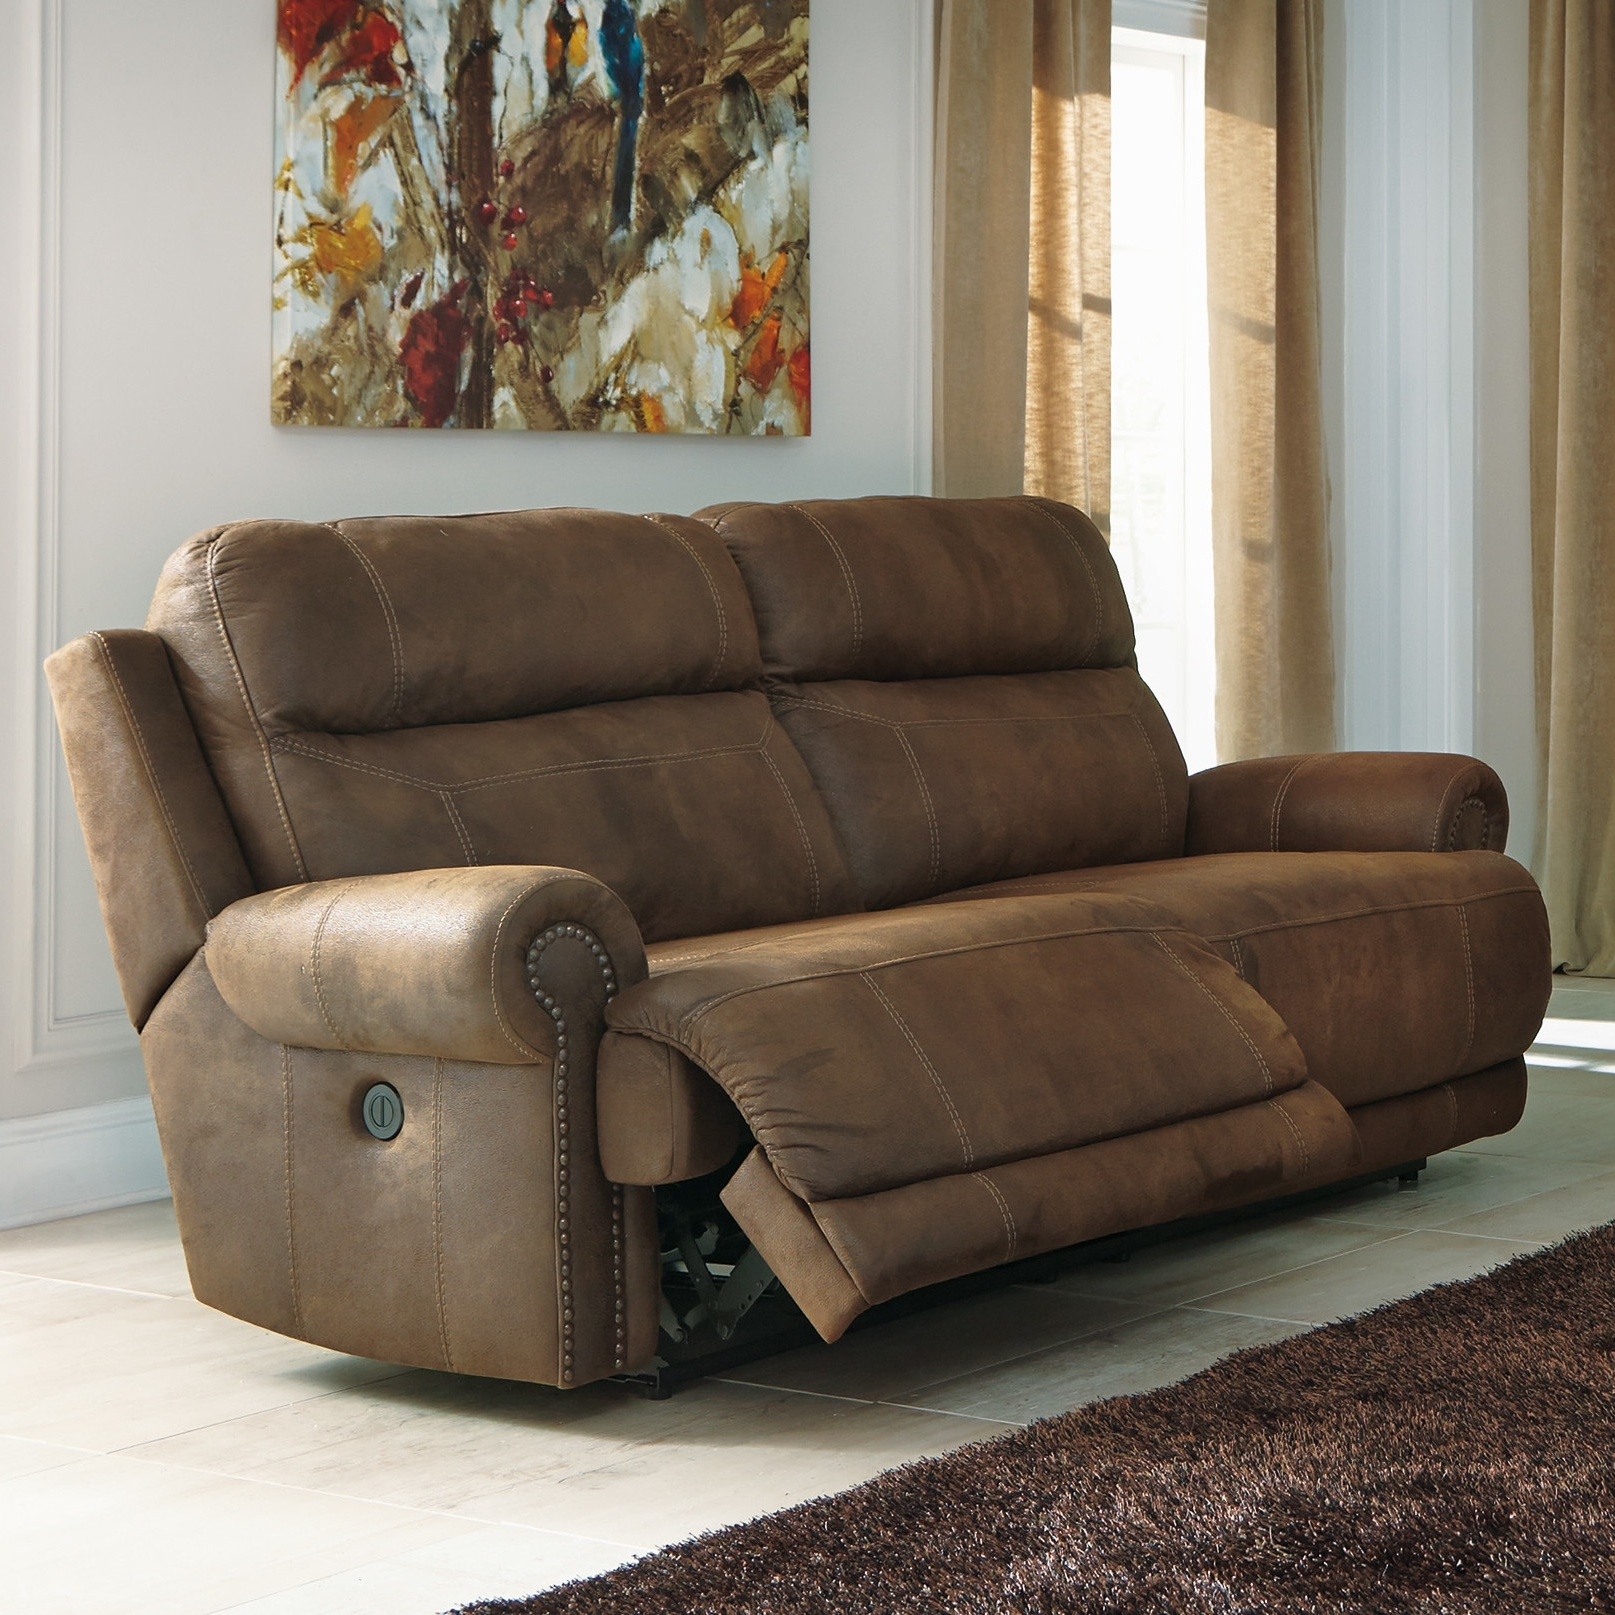 Trendy 2 Seat Sectional Sofas With Austere 2 Seat Reclining Sofasignature Designashley (View 9 of 20)